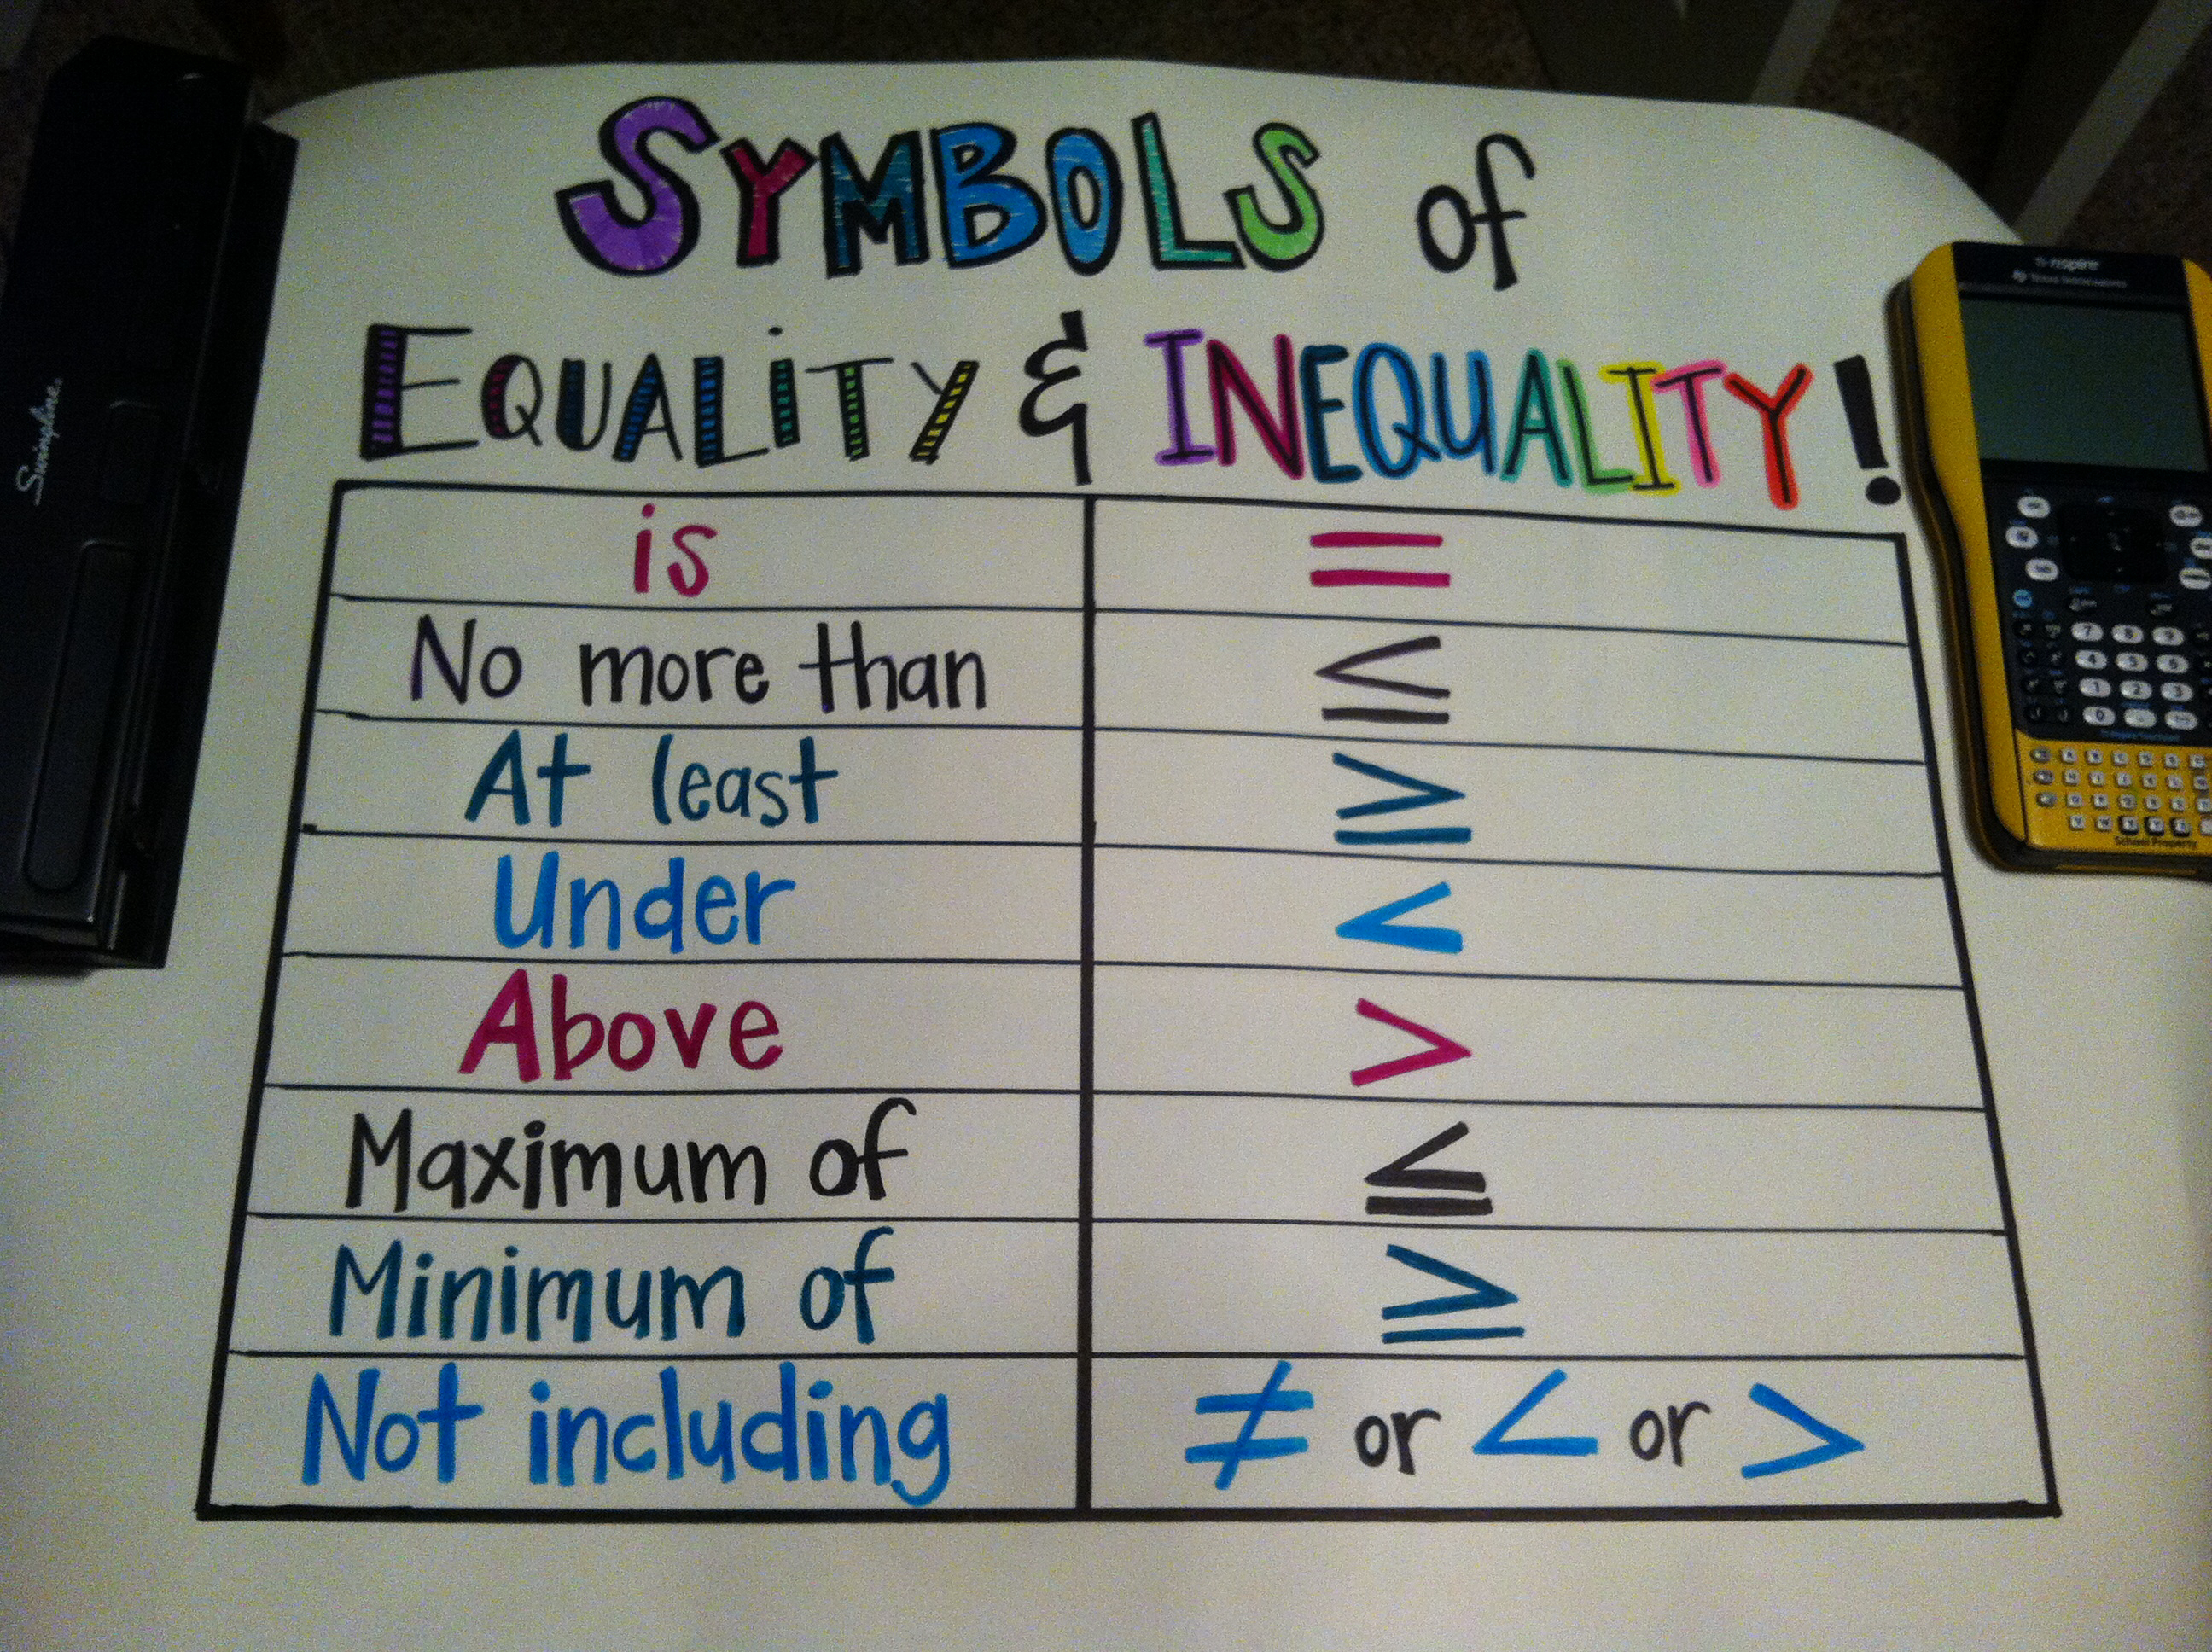 8th grade math worksheets and learning tools 8th grade math symbols equality and inequalities biocorpaavc